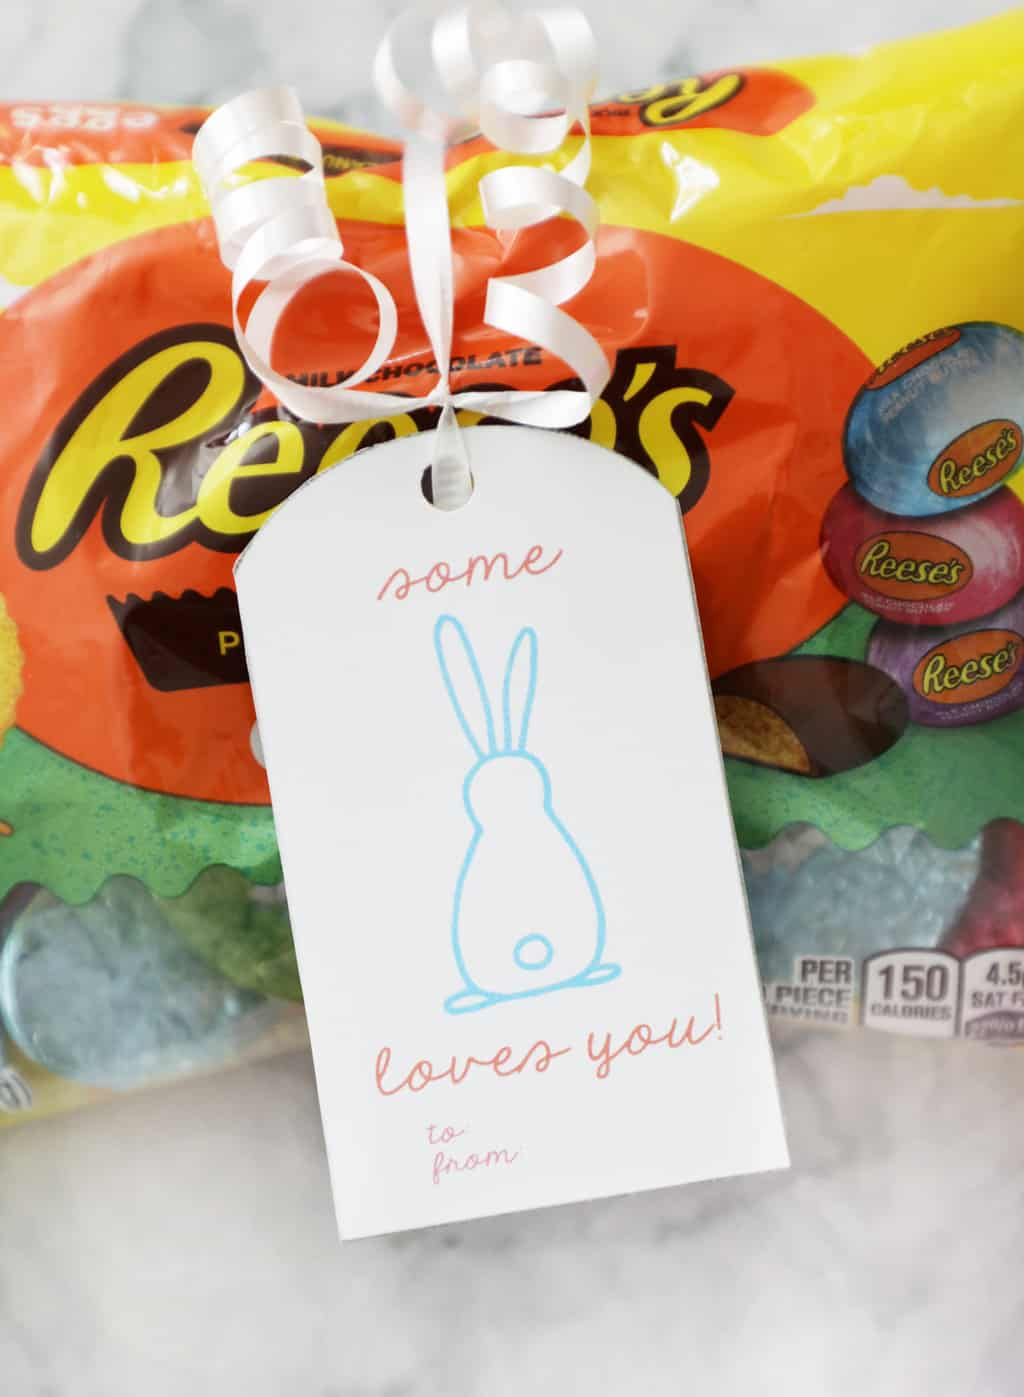 some bunny loves you tag tied on a bag of Reeses eggs